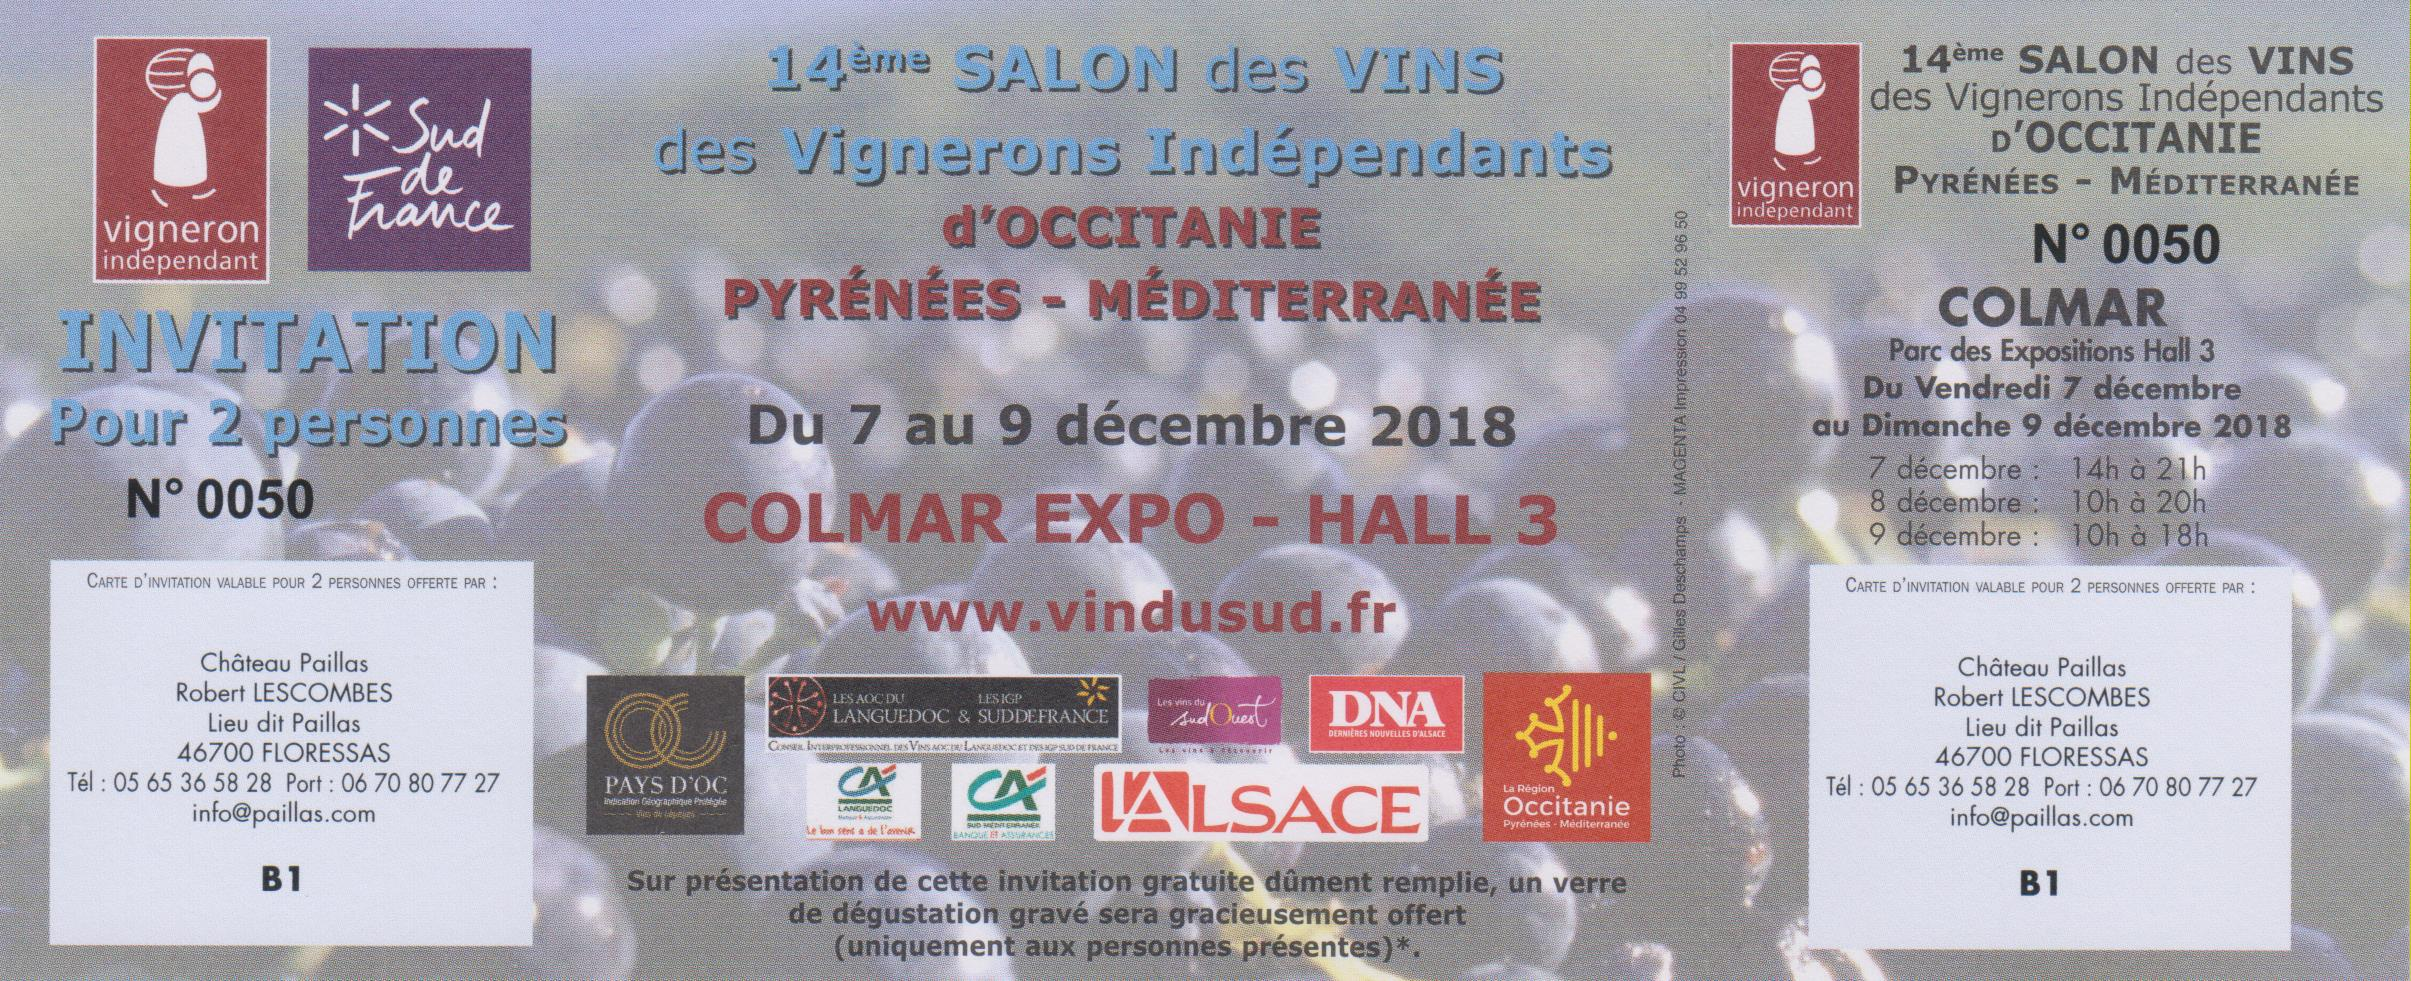 Invitation au salon de vignerons indépendants de Colmar